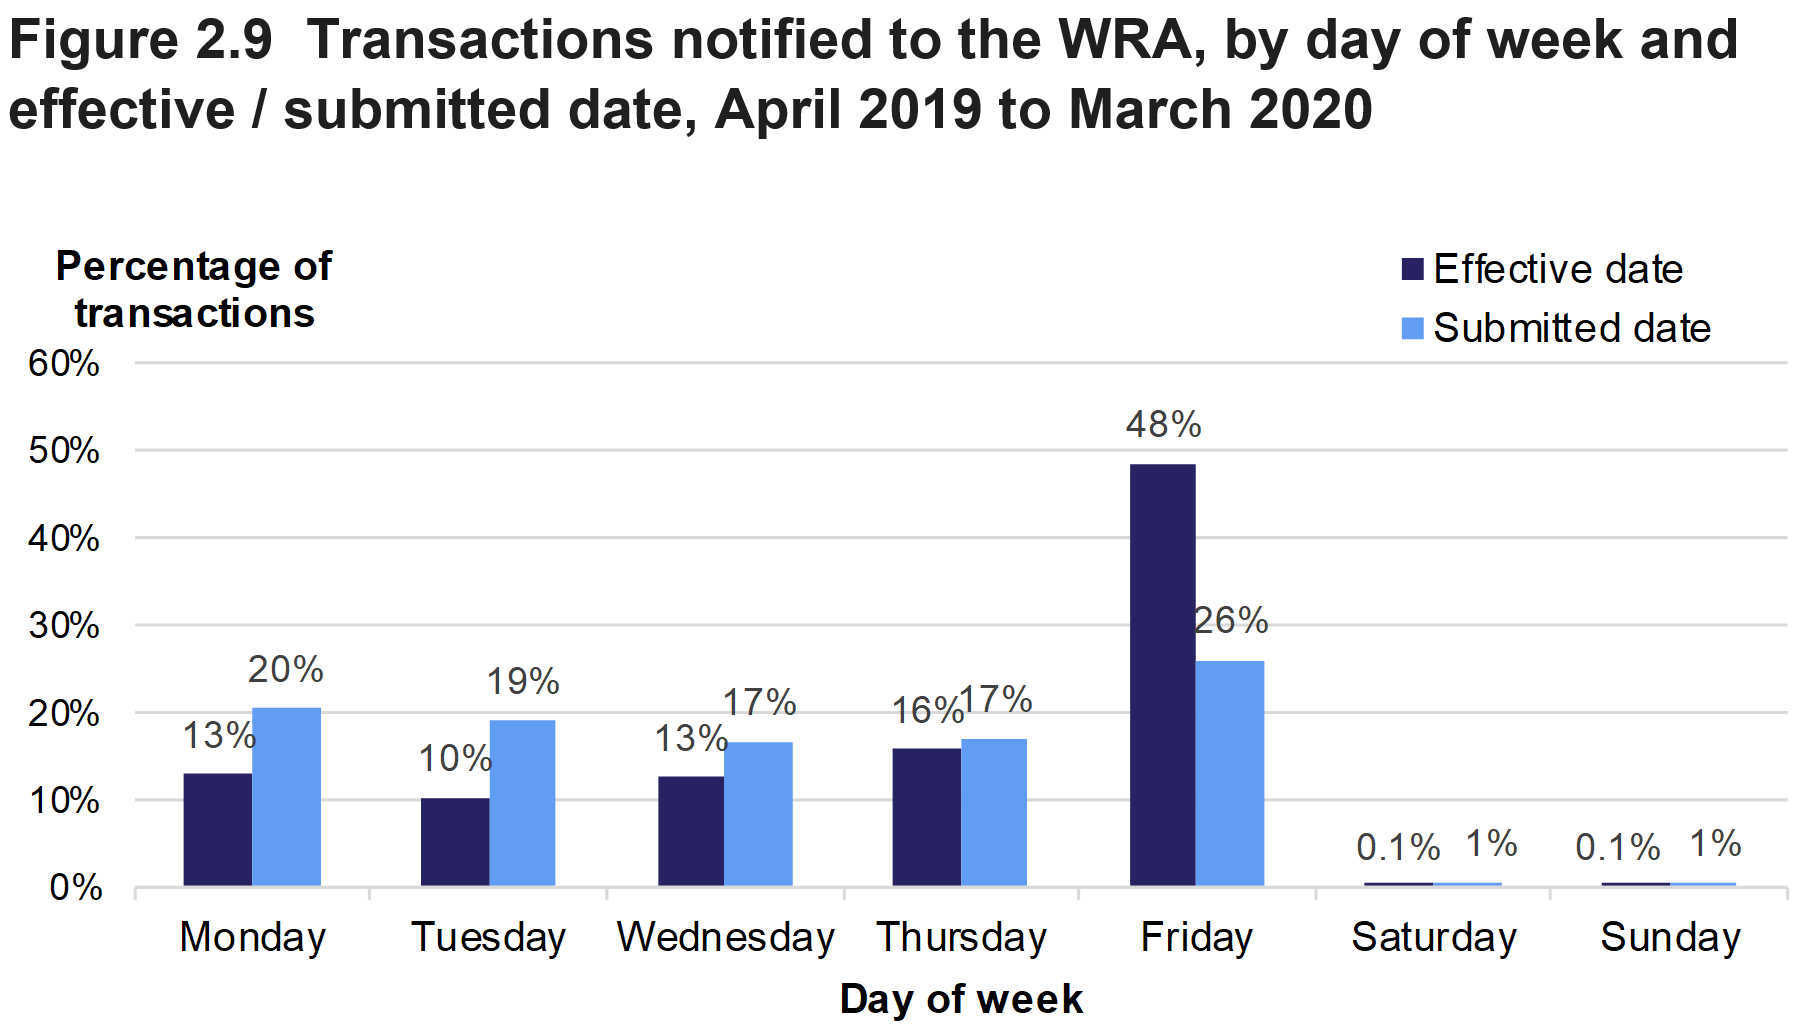 Figure 2.9 shows the percentage of transactions which became effective and which were submitted on the different days of the week. The data relates to transactions which were effective in April 2019 to March 2020, and transactions submitted to the WRA between April 2019 and March 2020.